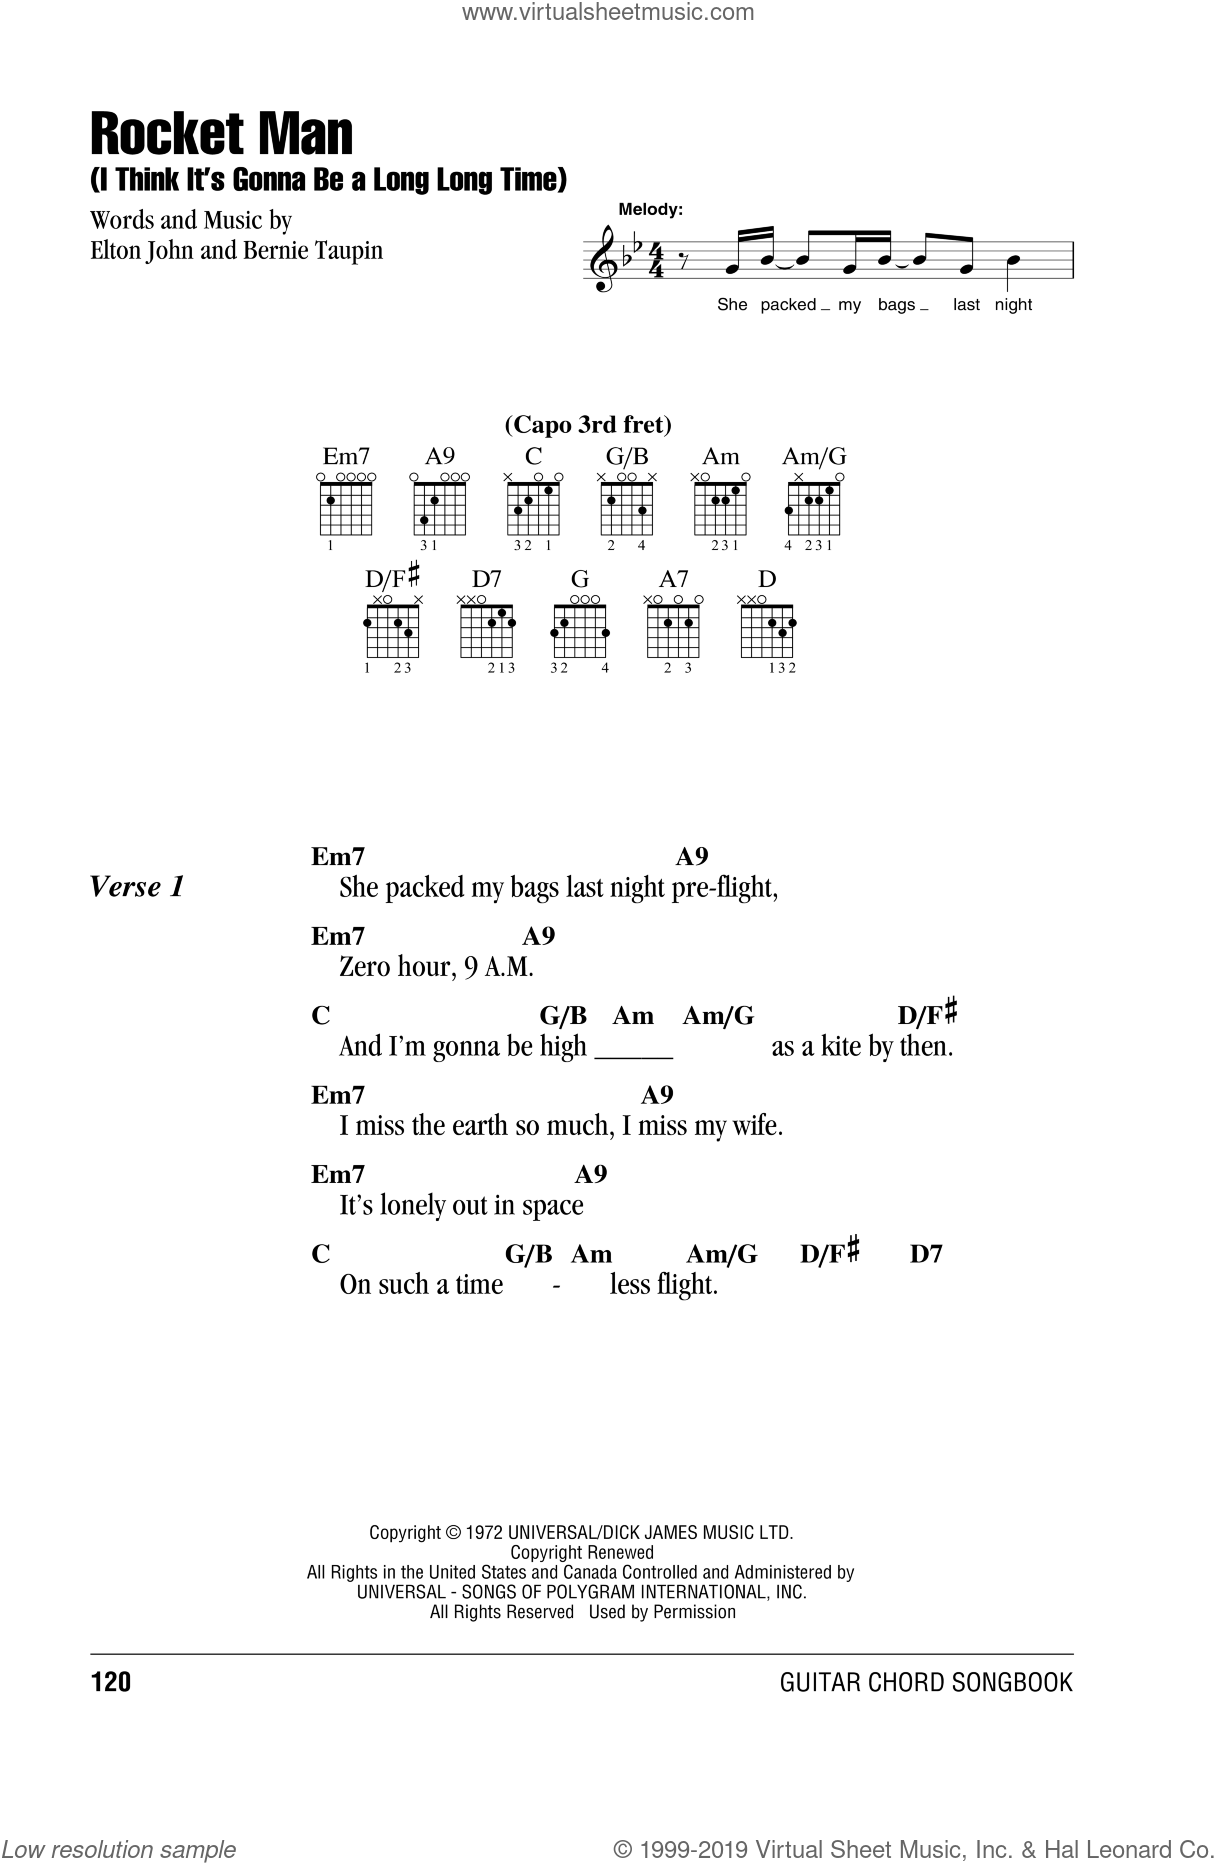 Rocket Man (I Think It's Gonna Be A Long Long Time) sheet music for guitar (chords) by Bernie Taupin